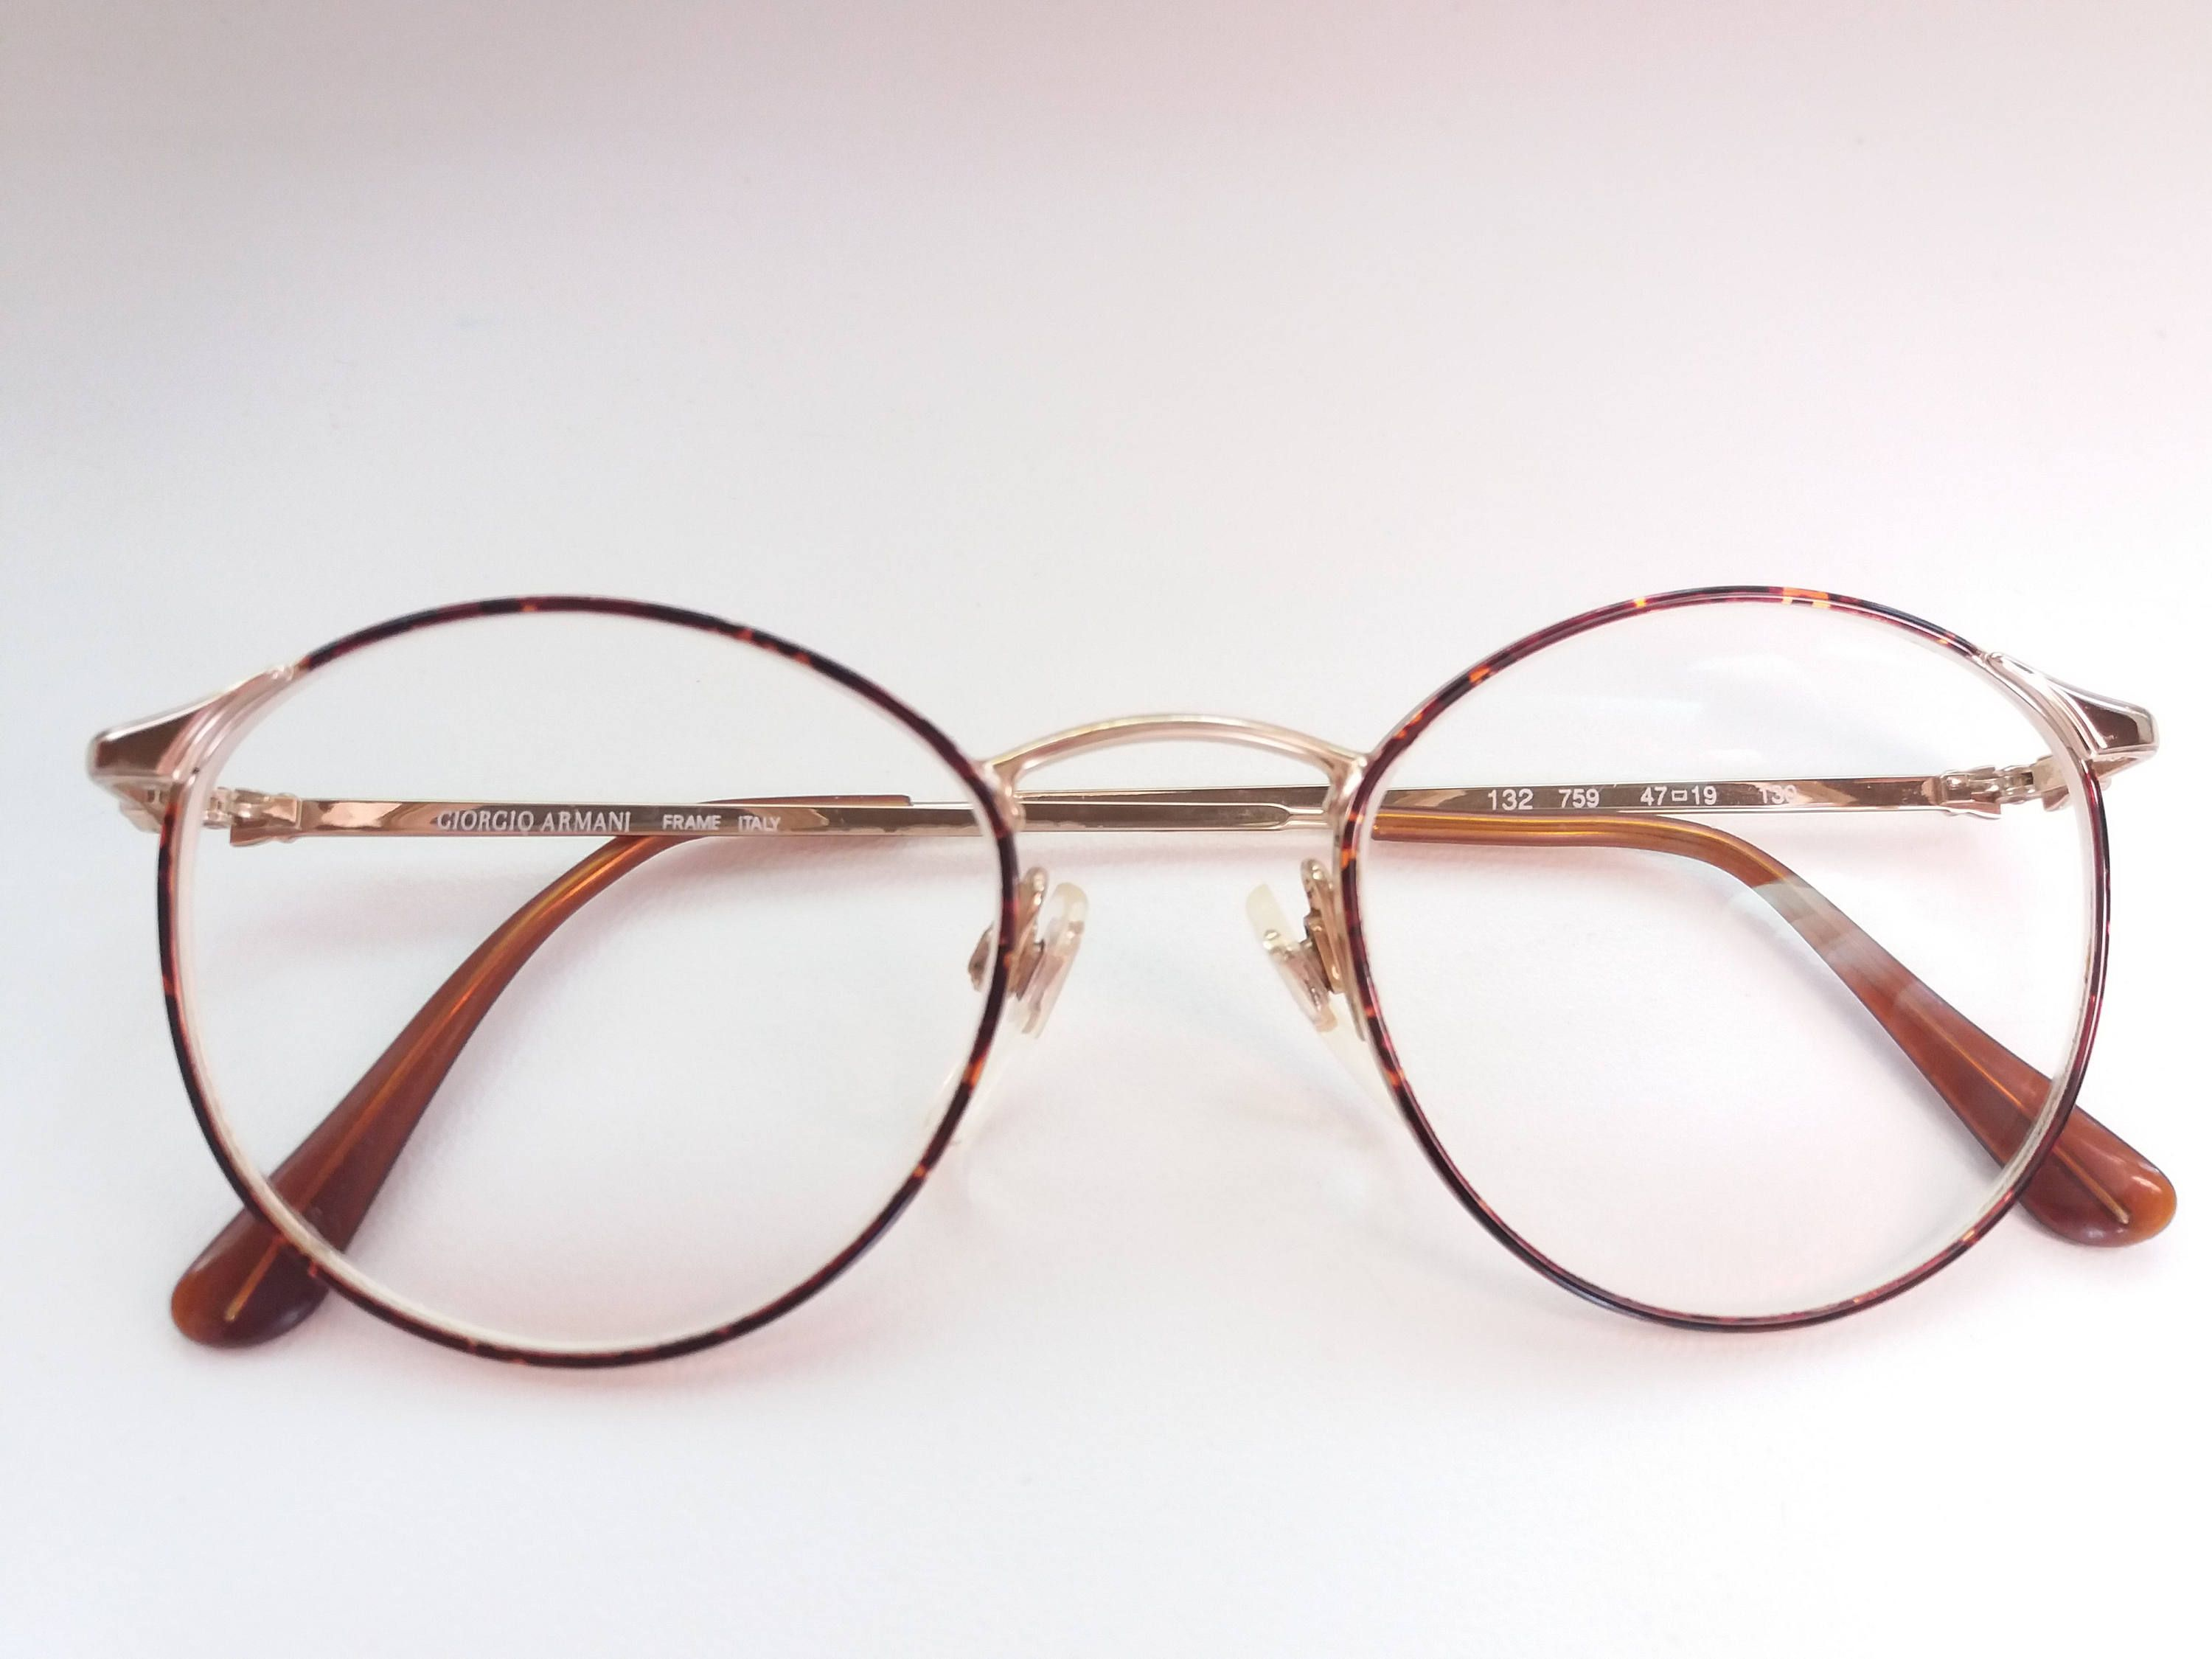 ec0c767df8fb Vintage GIORGIO ARMANI 132 759 EYEGLASSES tortoise and gold retro very rare  eyeglass frame